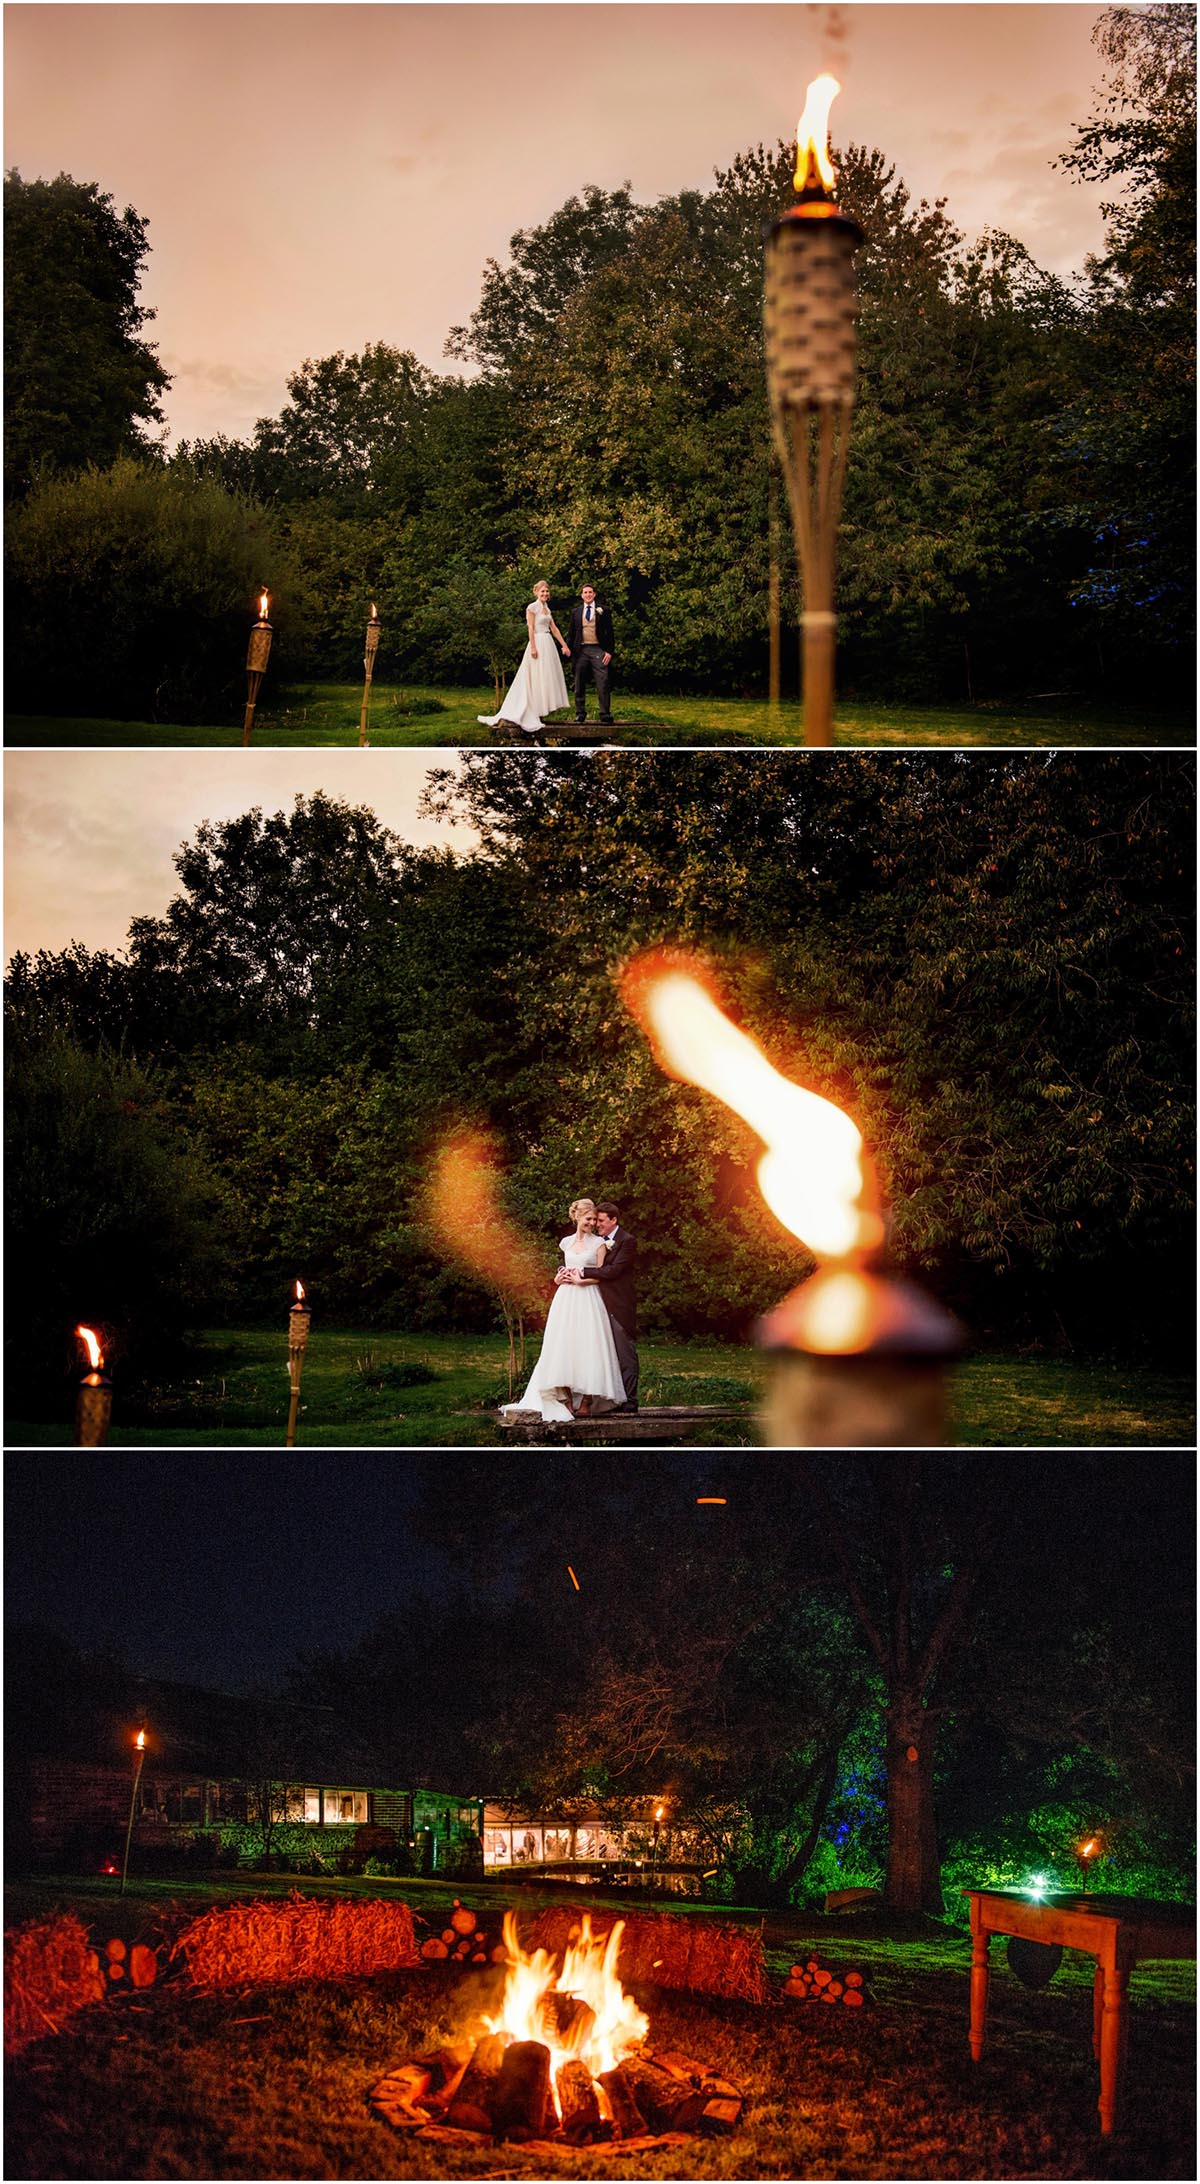 Susie and Ed's Dorset Wedding in Alton Pancras, Dorset, near Cerne Abbas, By Lisa Carpenter Photography, West Midlands, Birmingham based photographer, fire sticks